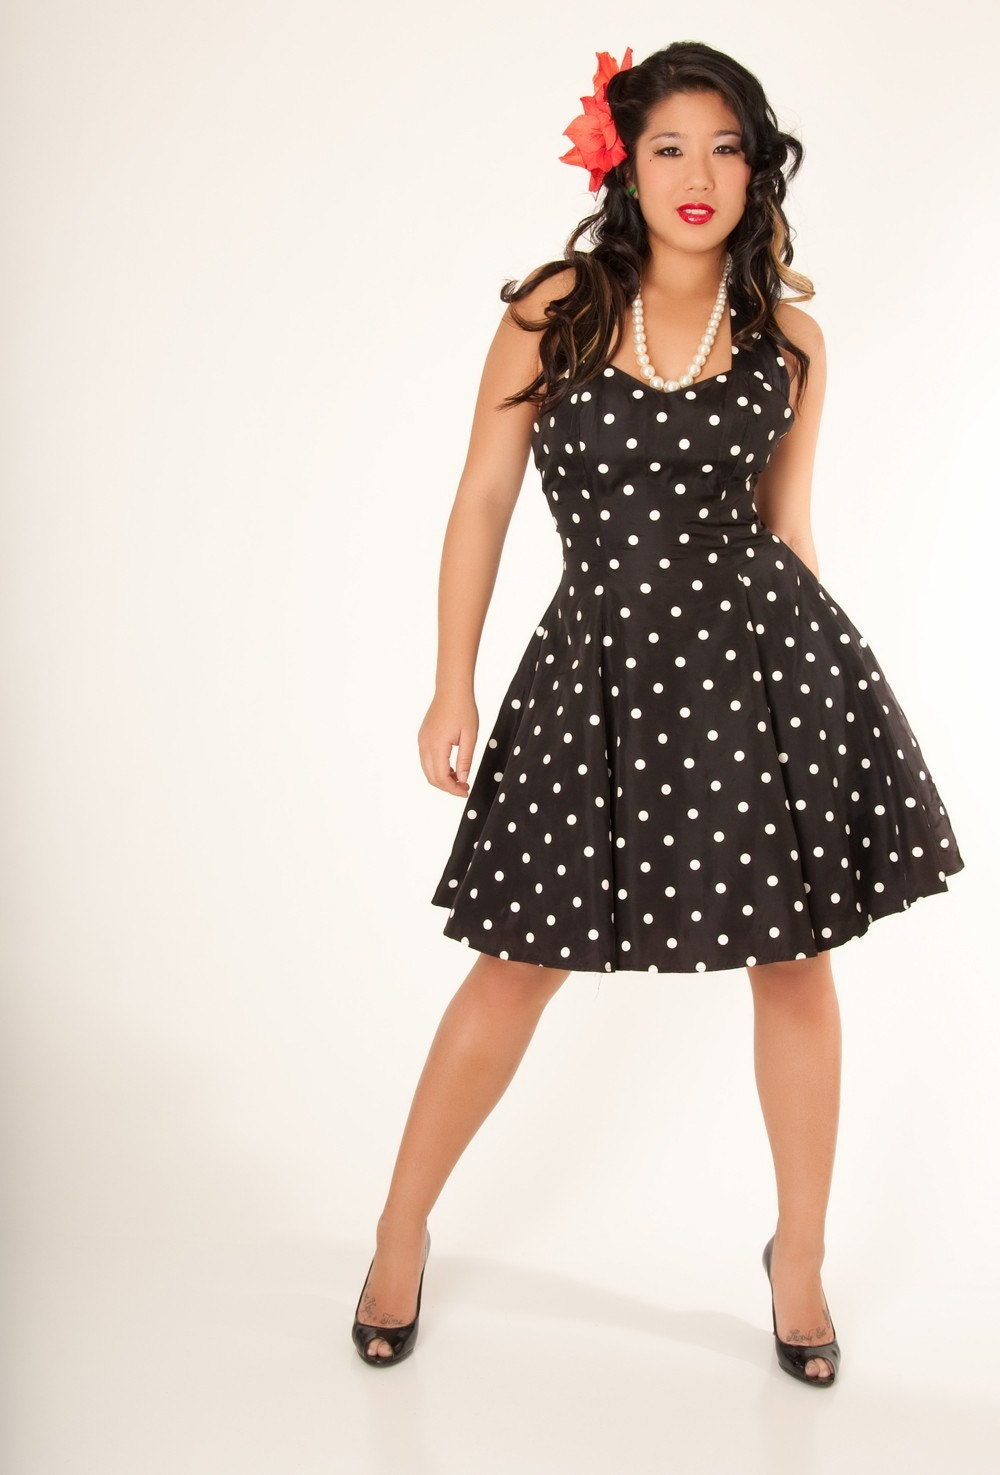 80s Vintage Clothing In The Uk Just Got Easier: Vintage 80's Retro 50's Style Black And White Polka